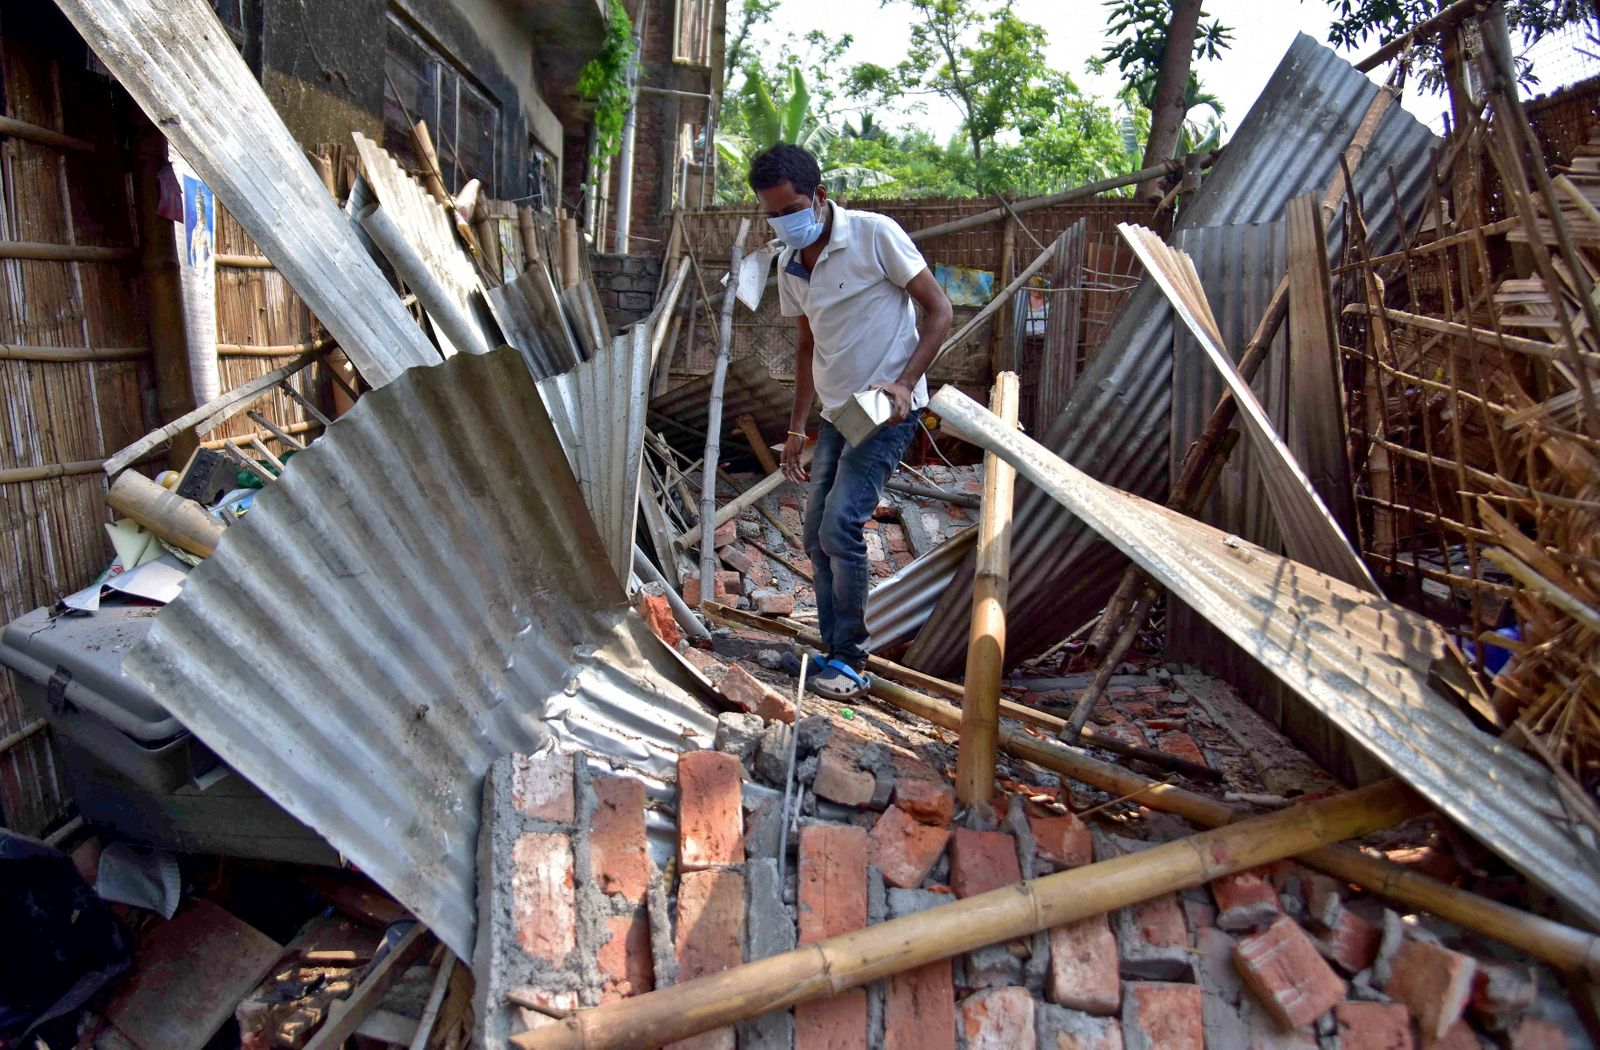 A man searches for his belongings amidst the debris after a boundary wall of his house collapsed following an earthquake in Nagaon